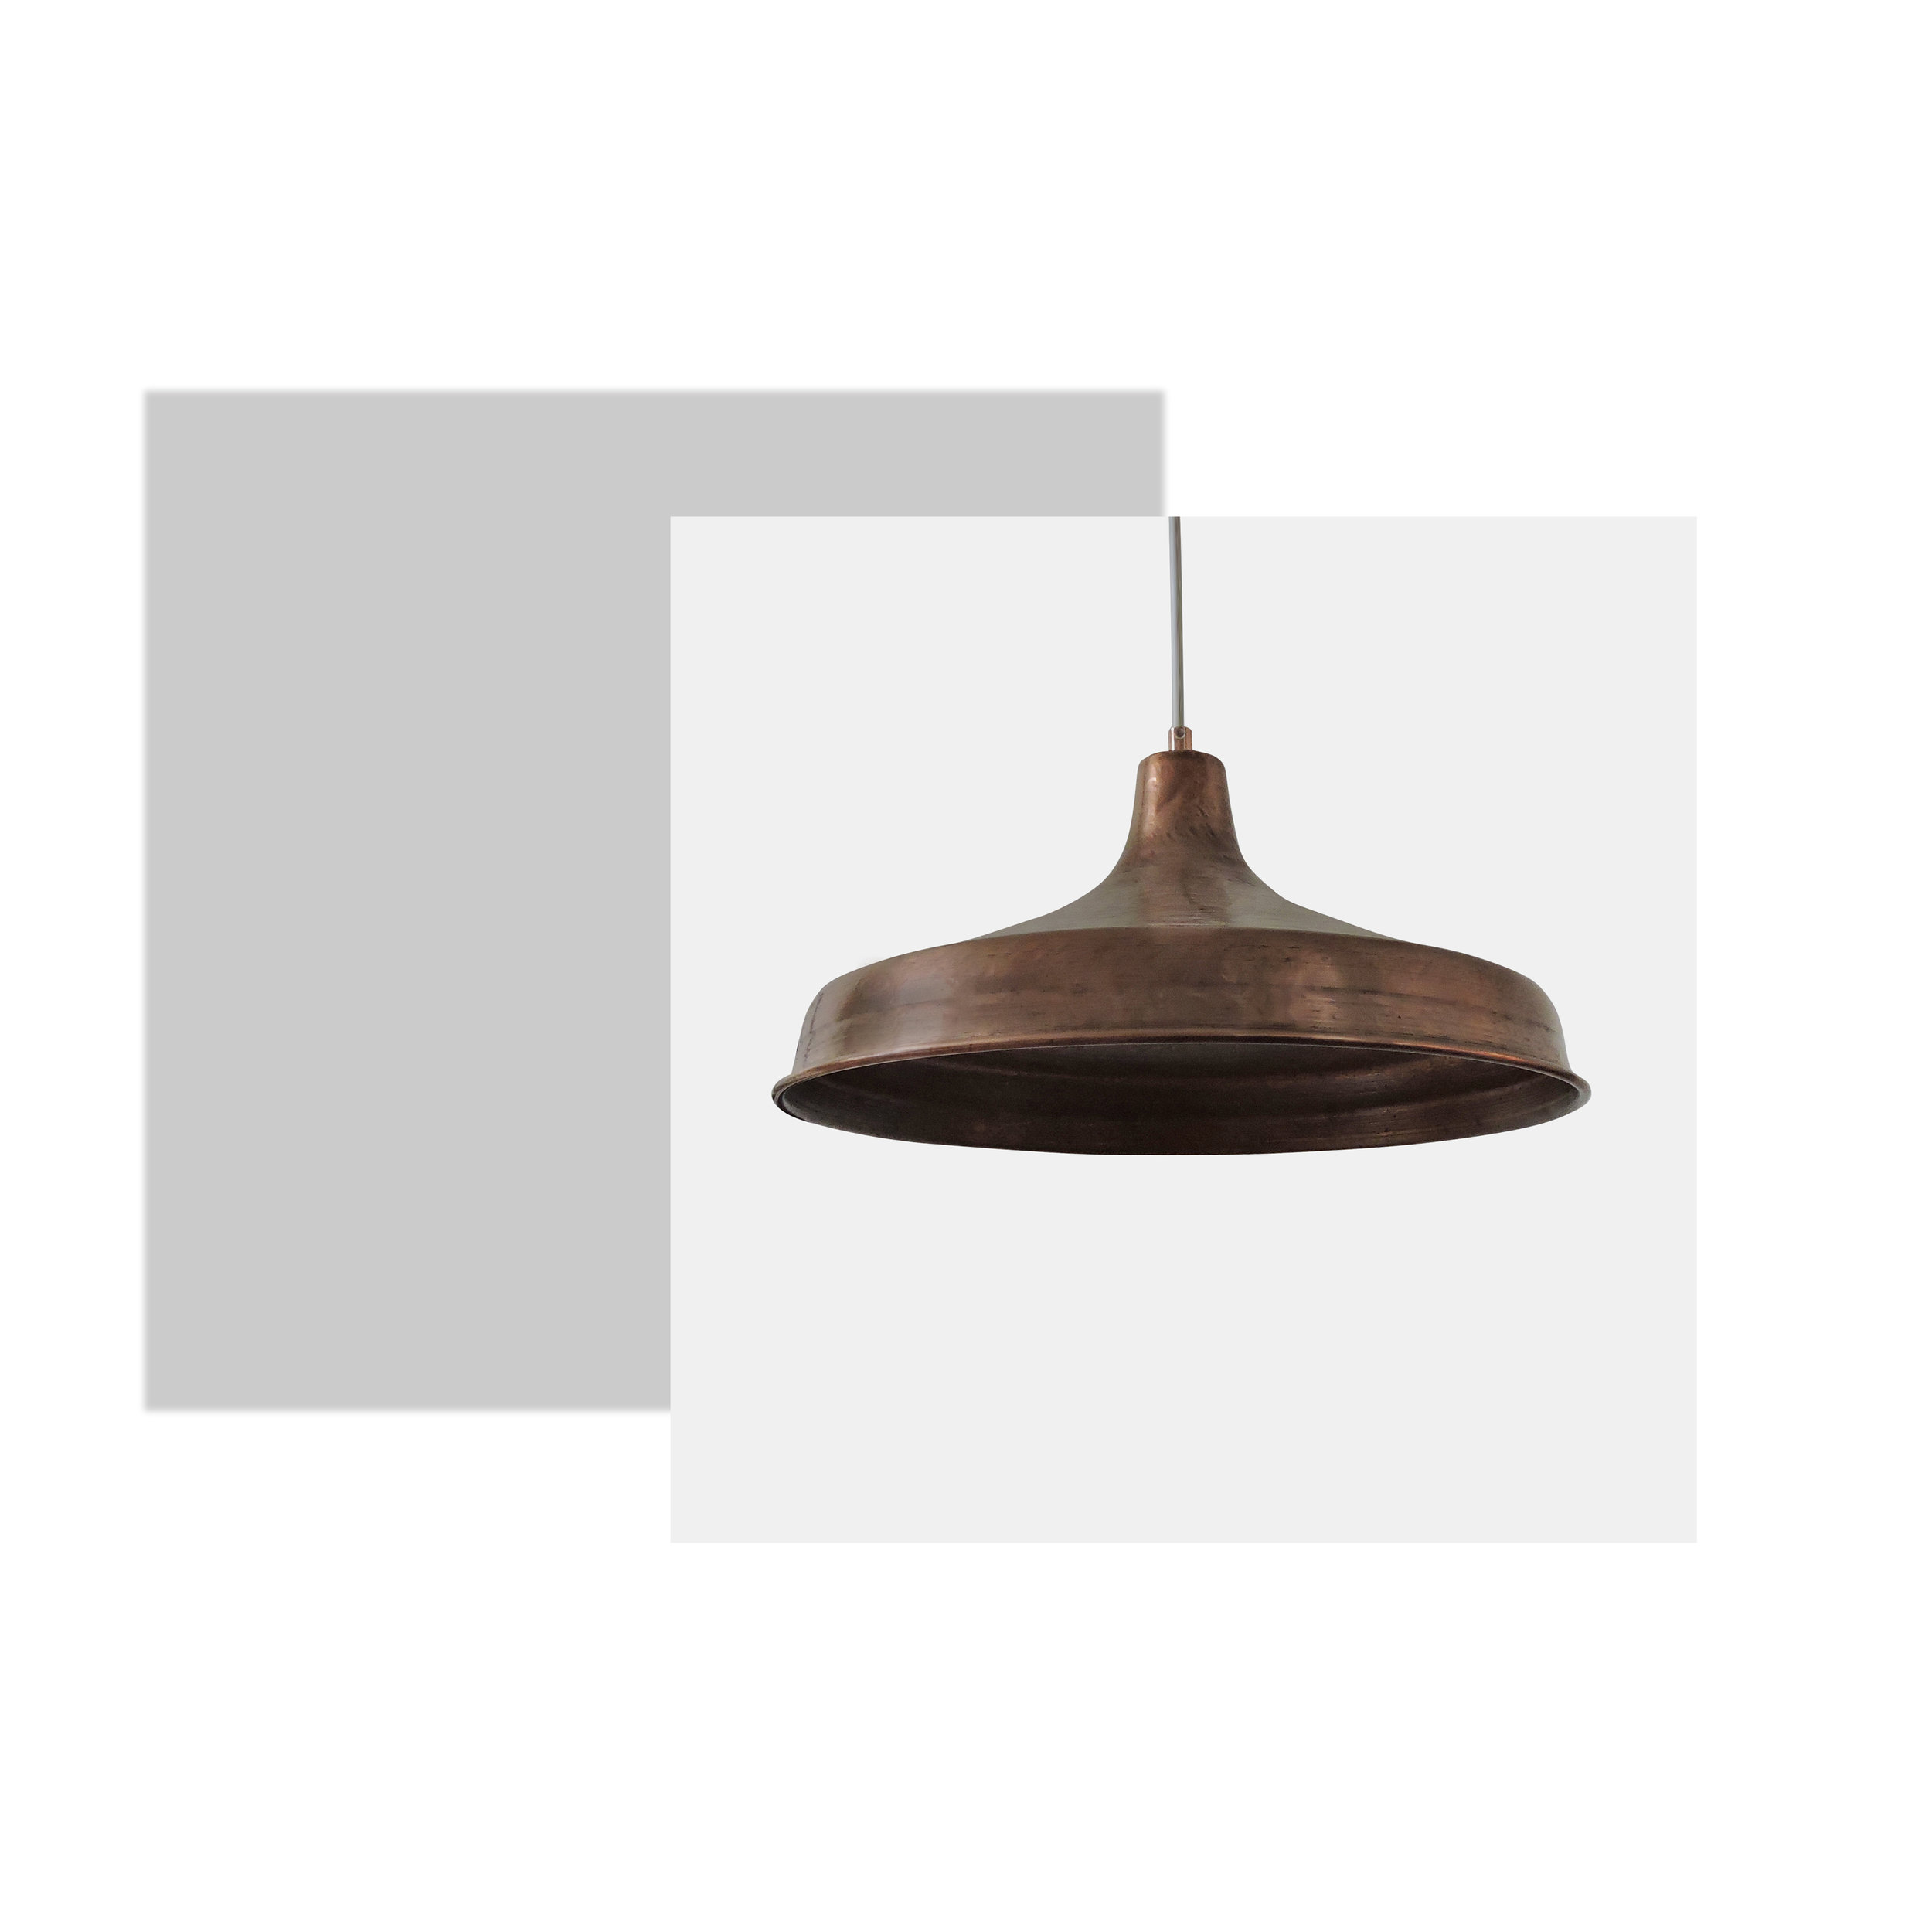 How gorgeous is this Danish hammered copper pendant light from the 1950s? I can see this is the kitchen or hanging over the dining table. The light is effortless but screams statement. This piece could change your space completely. The colour and texture of the light draws you eyes in, giving the room a new feel and warmth.